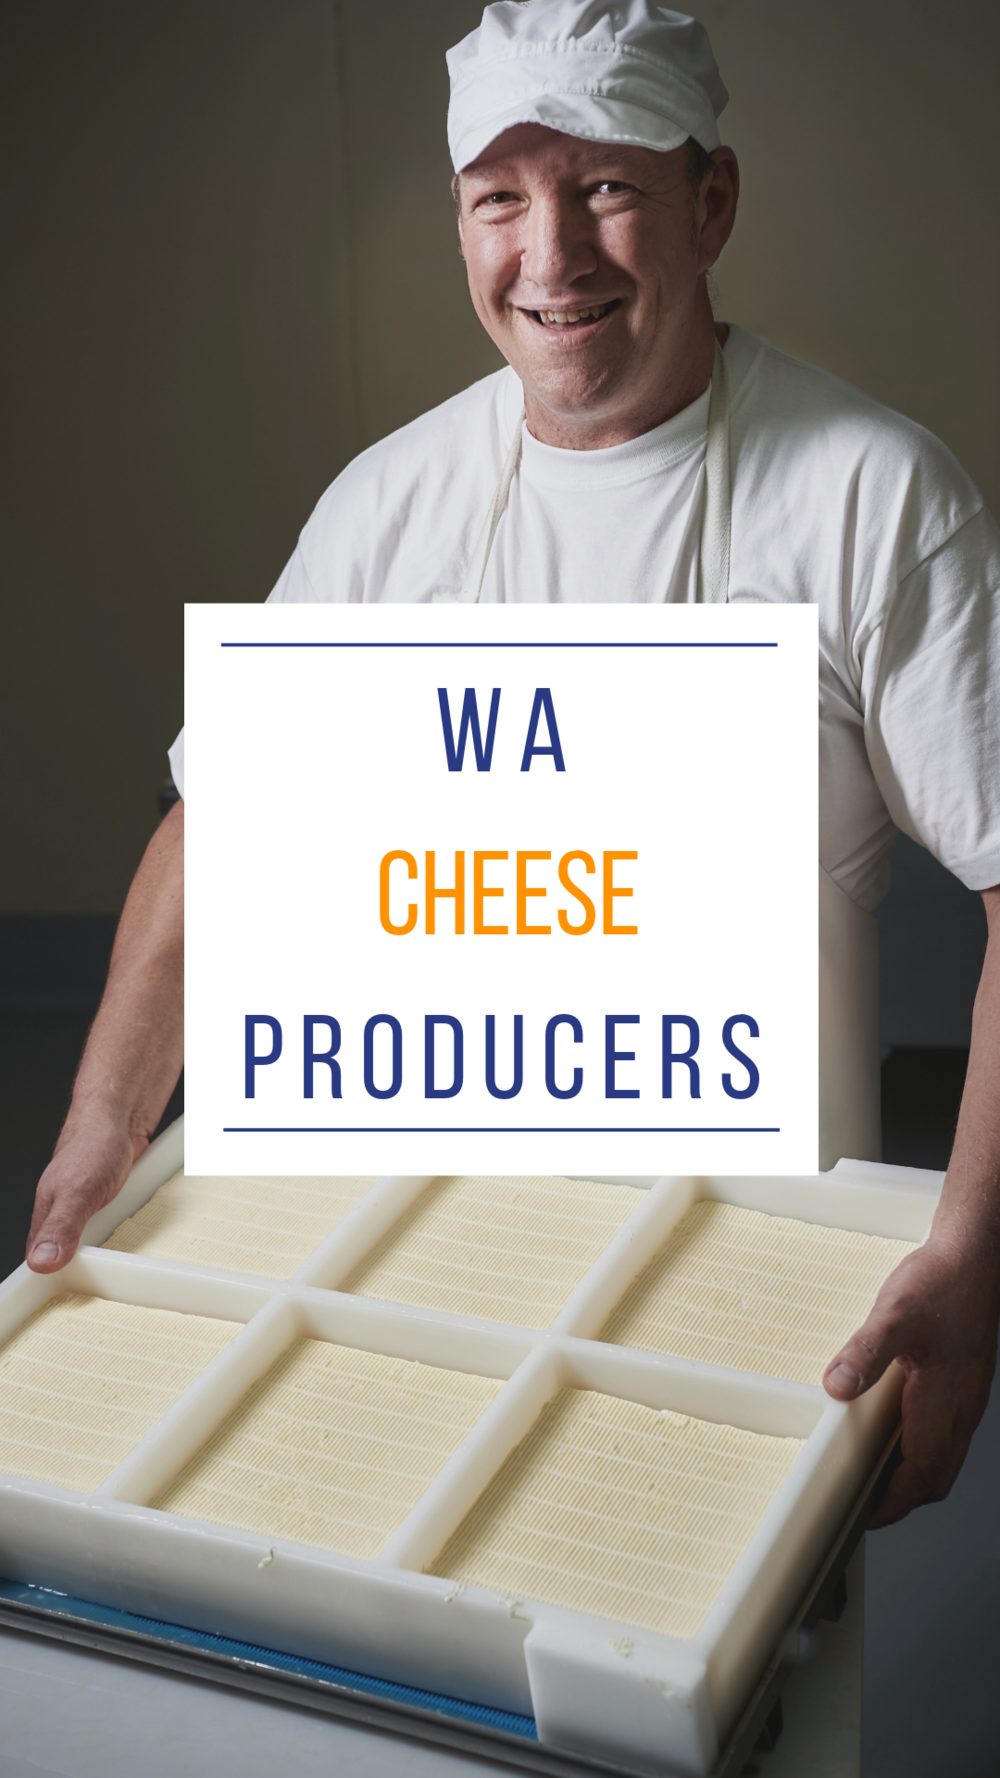 wa Cheese makers (1).png